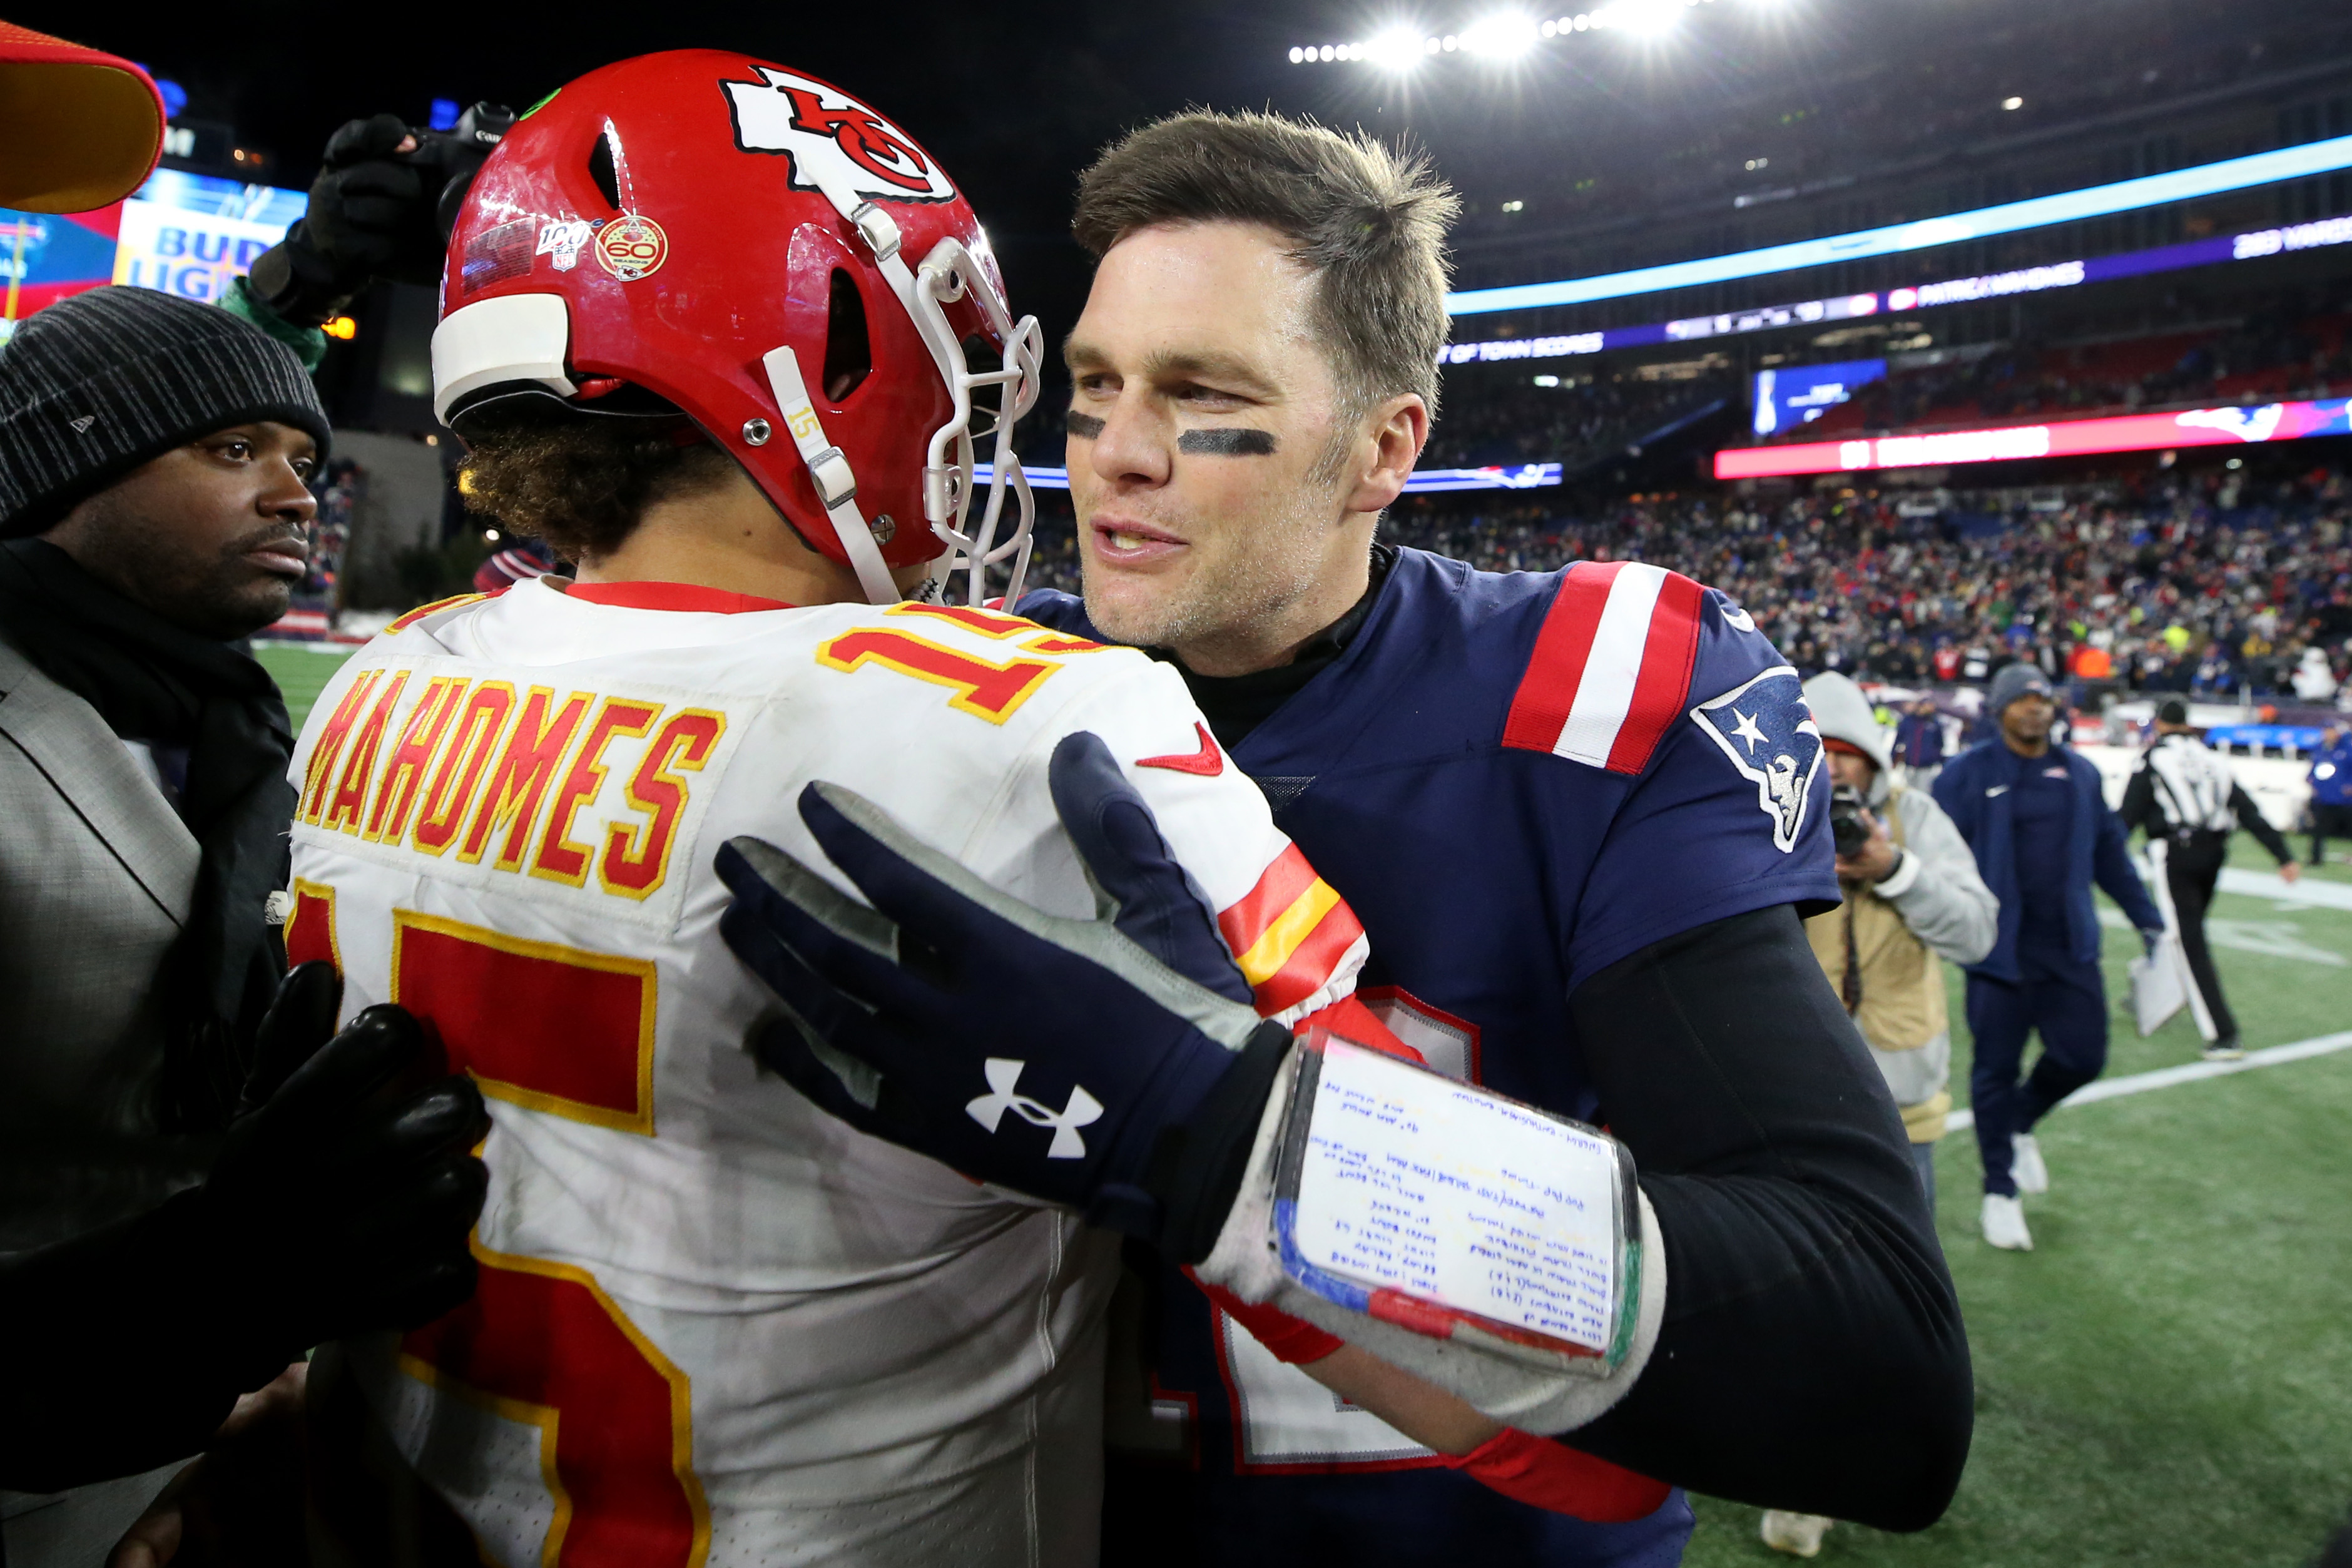 Tom Brady of the New England Patriots talks with Patrick Mahomes of the Kansas City Chiefs after the Chief defeat the Patriots 23-16 at Gillette Stadium on December 08, 2019 in Foxborough, Massachusetts.